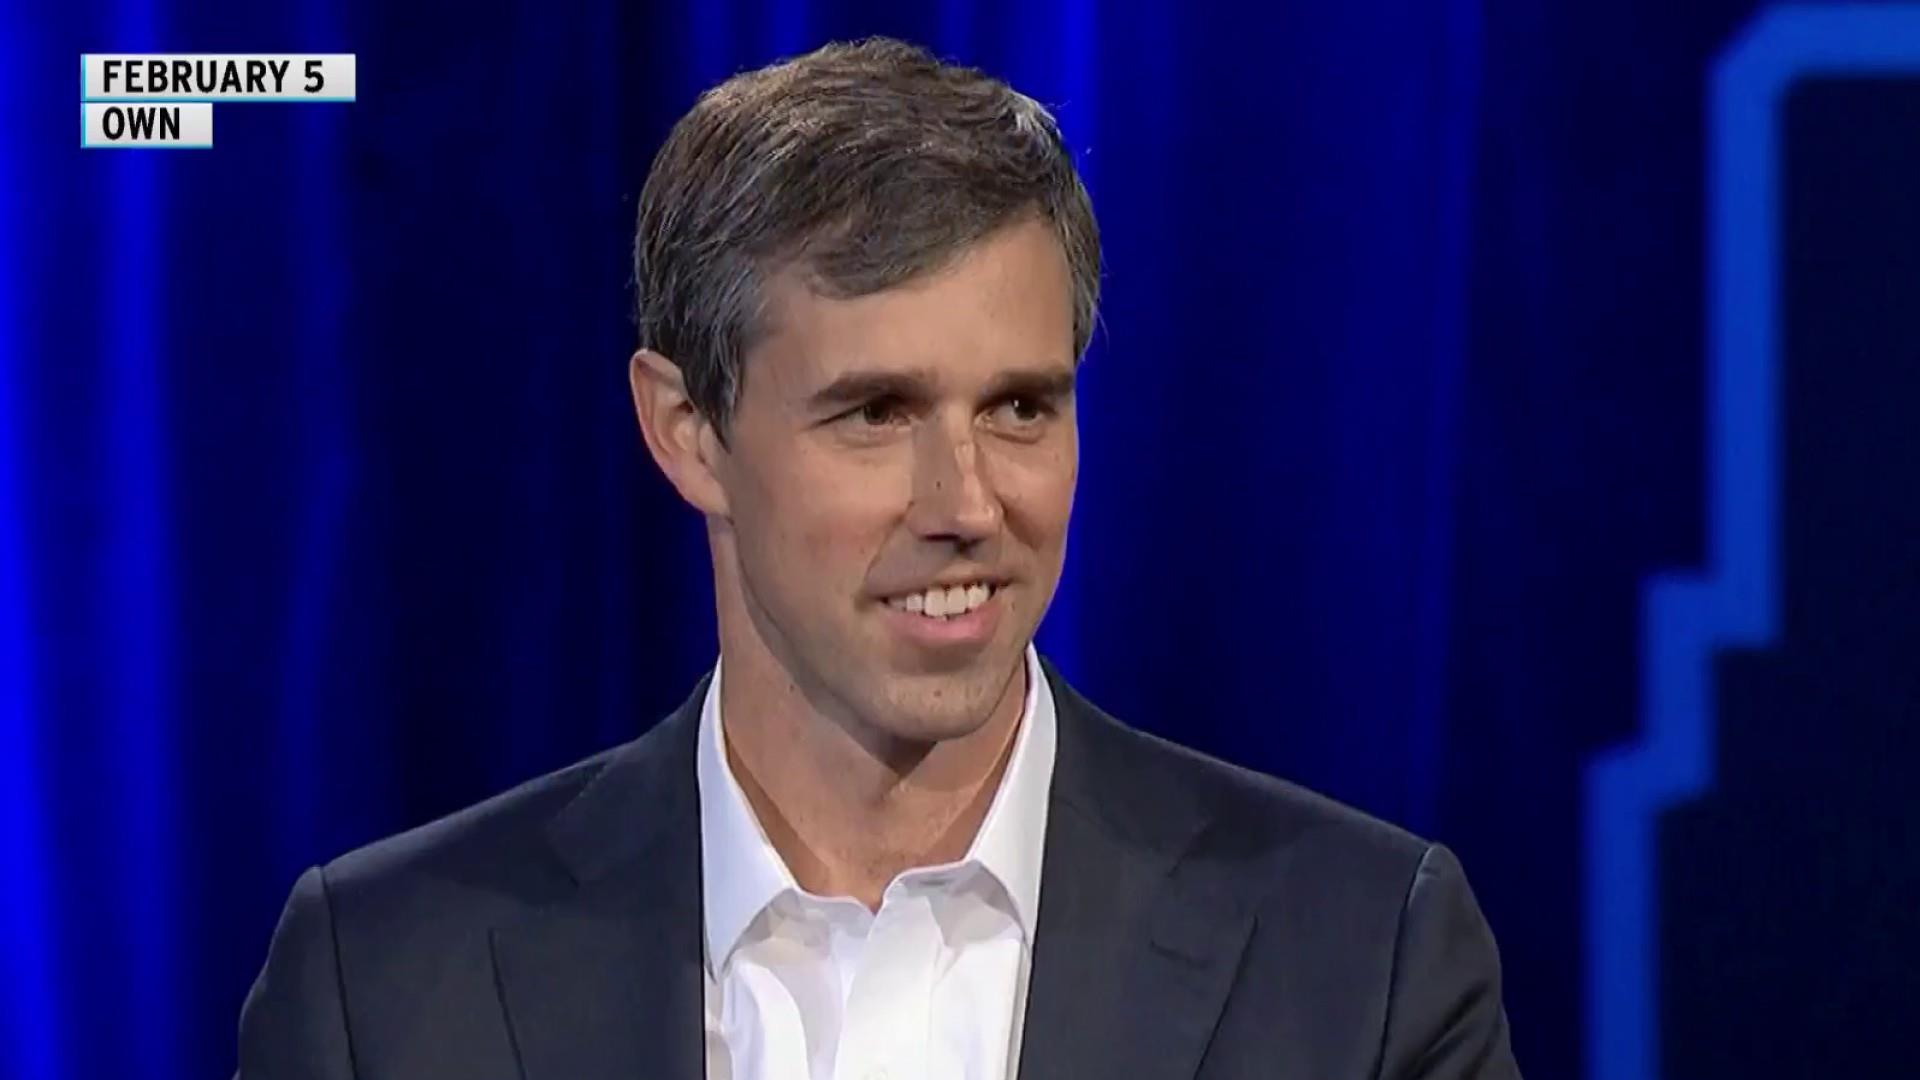 GOP fuss over potential Beto 2020 candidacy primed to backfire